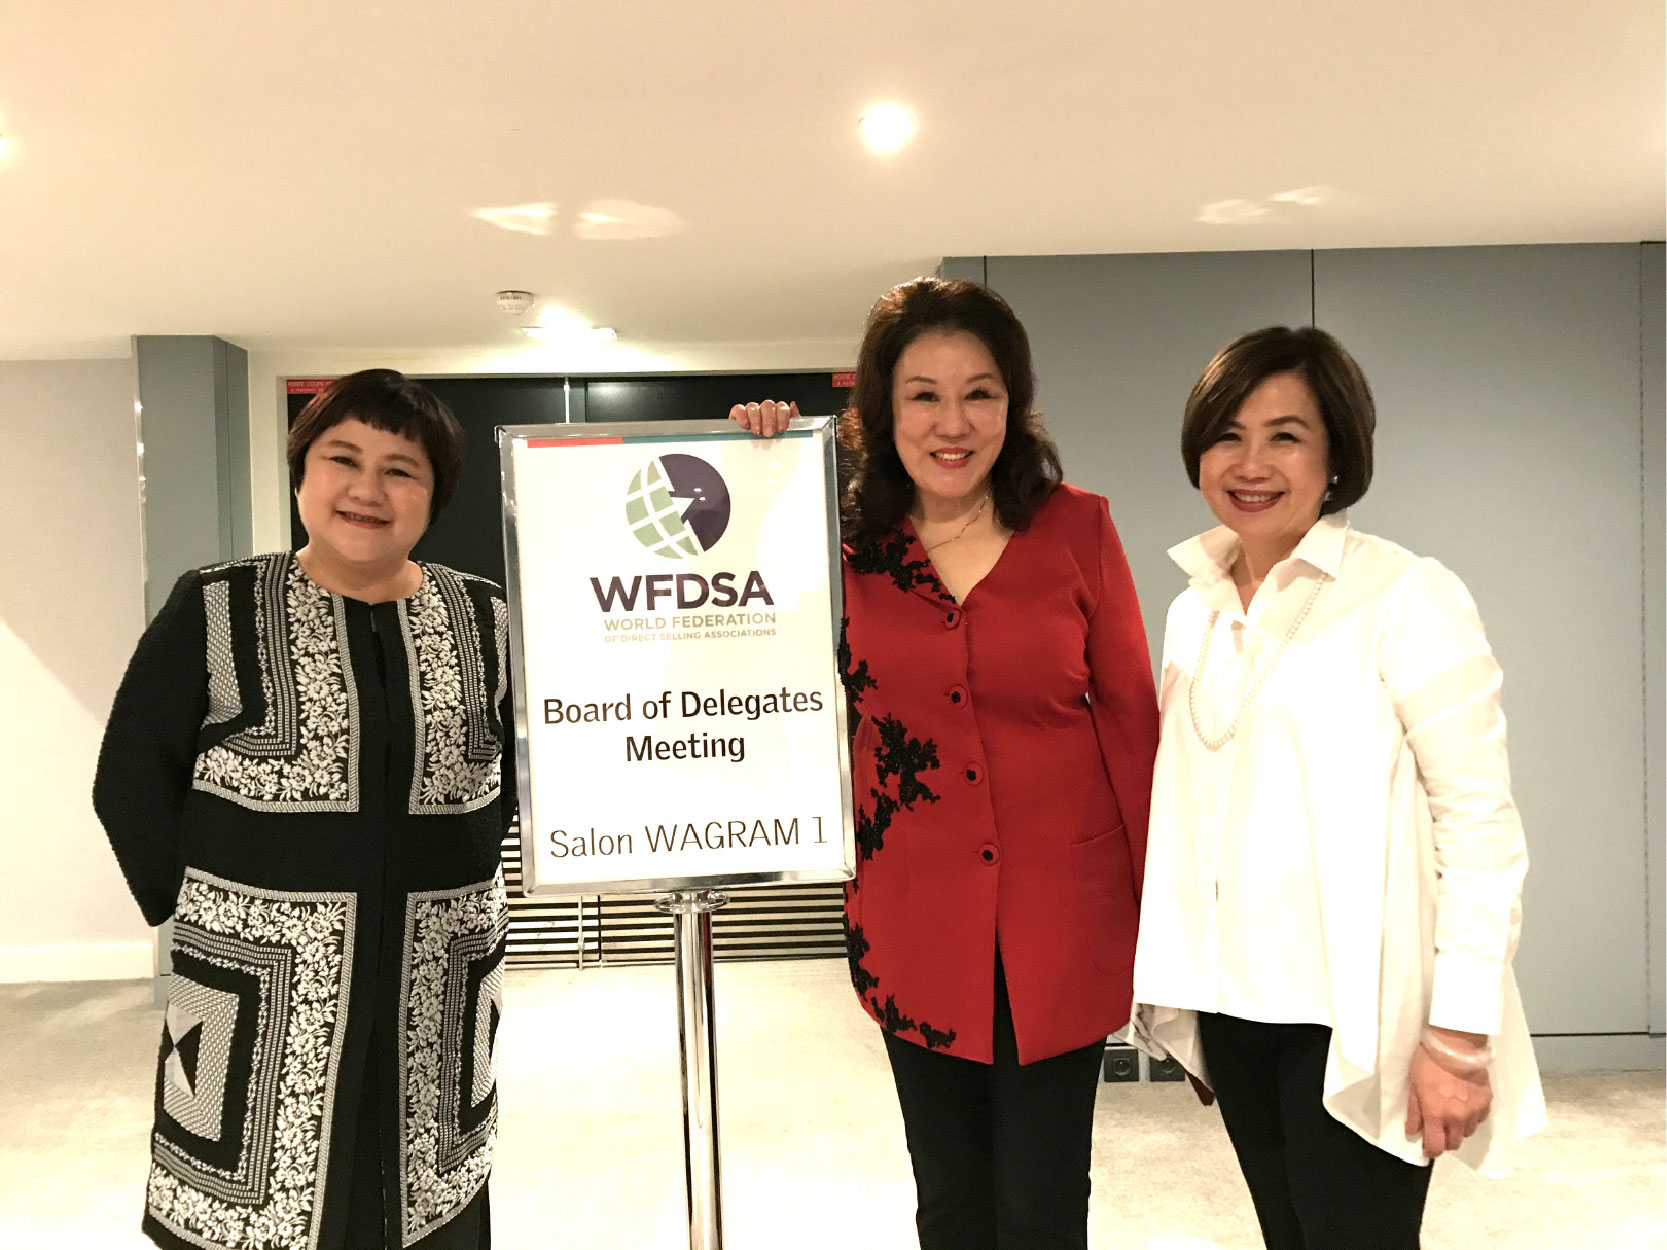 DSA Attended the WFDSA World Congress and Council